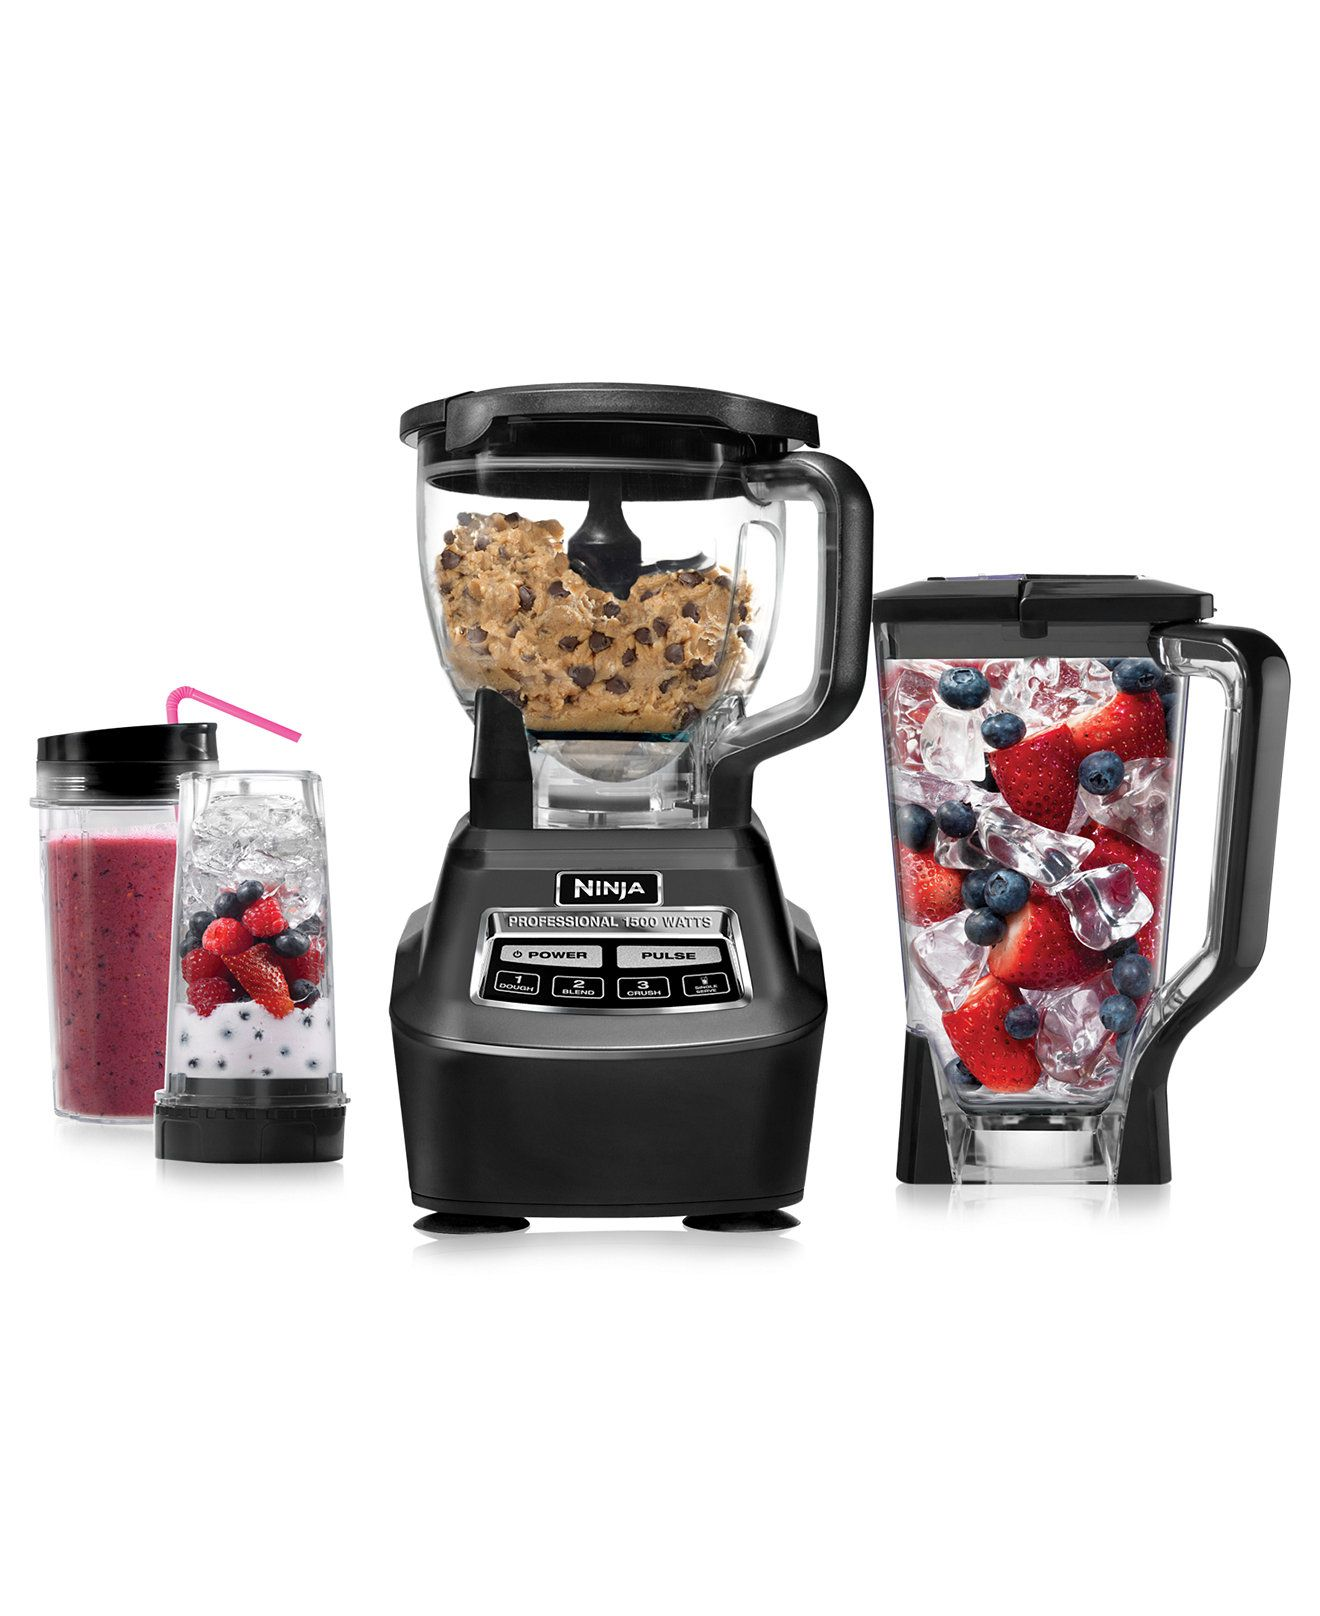 ninja complete kitchen system chairs on casters bl770 blender and food processor mega